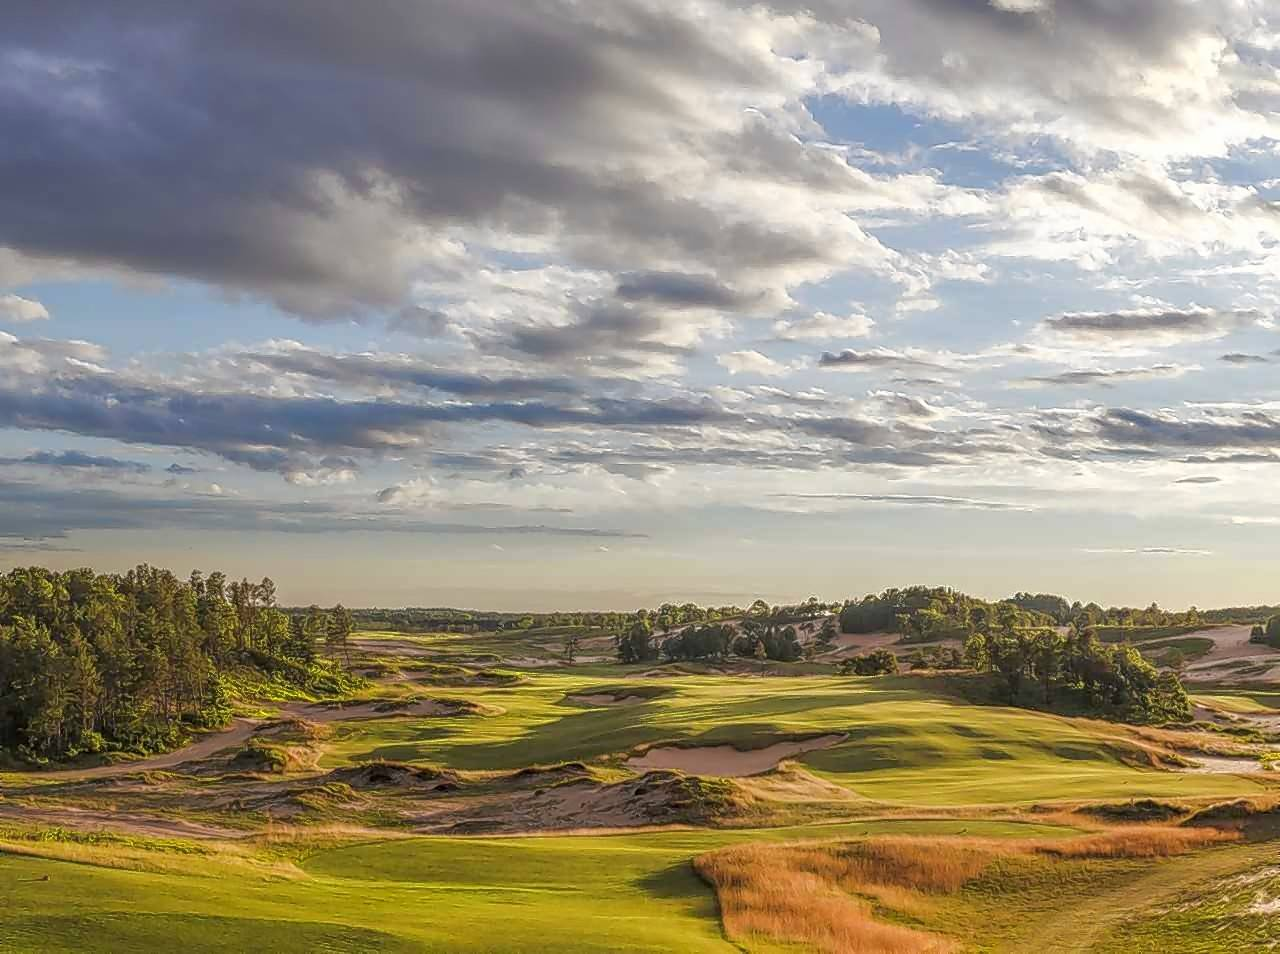 Sand Valley in Nekoosa, Wisconsin, was ranked No. 15 in Golfweek Magazines list of top golf courses.